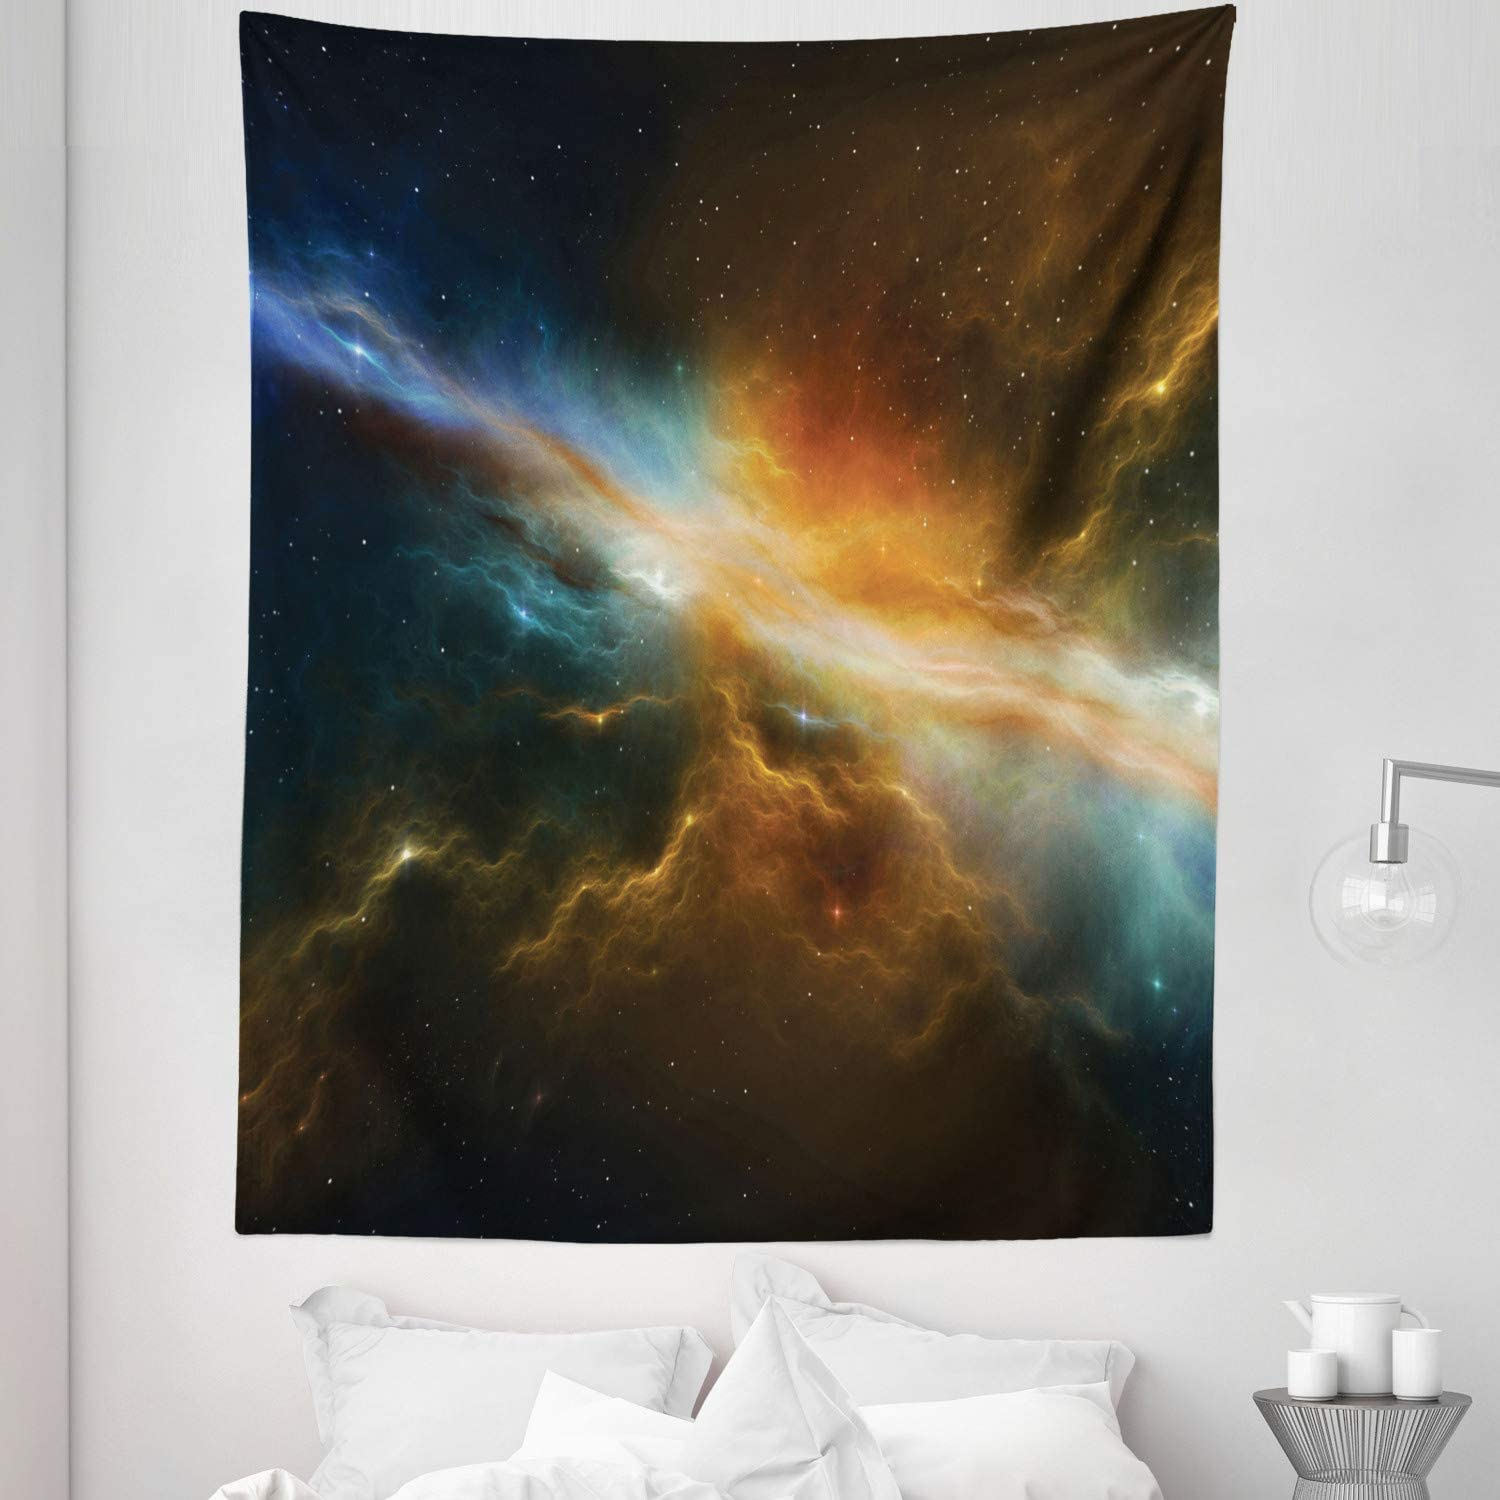 "Lunarable Outer Space Tapestry Twin Size, Astronomy Celestial Meteorite Supernova Dark Mysterious Space Picture, Wall Hanging Bedspread Bed Cover Wall Decor, 68"" X 88"", Marigold Blue"